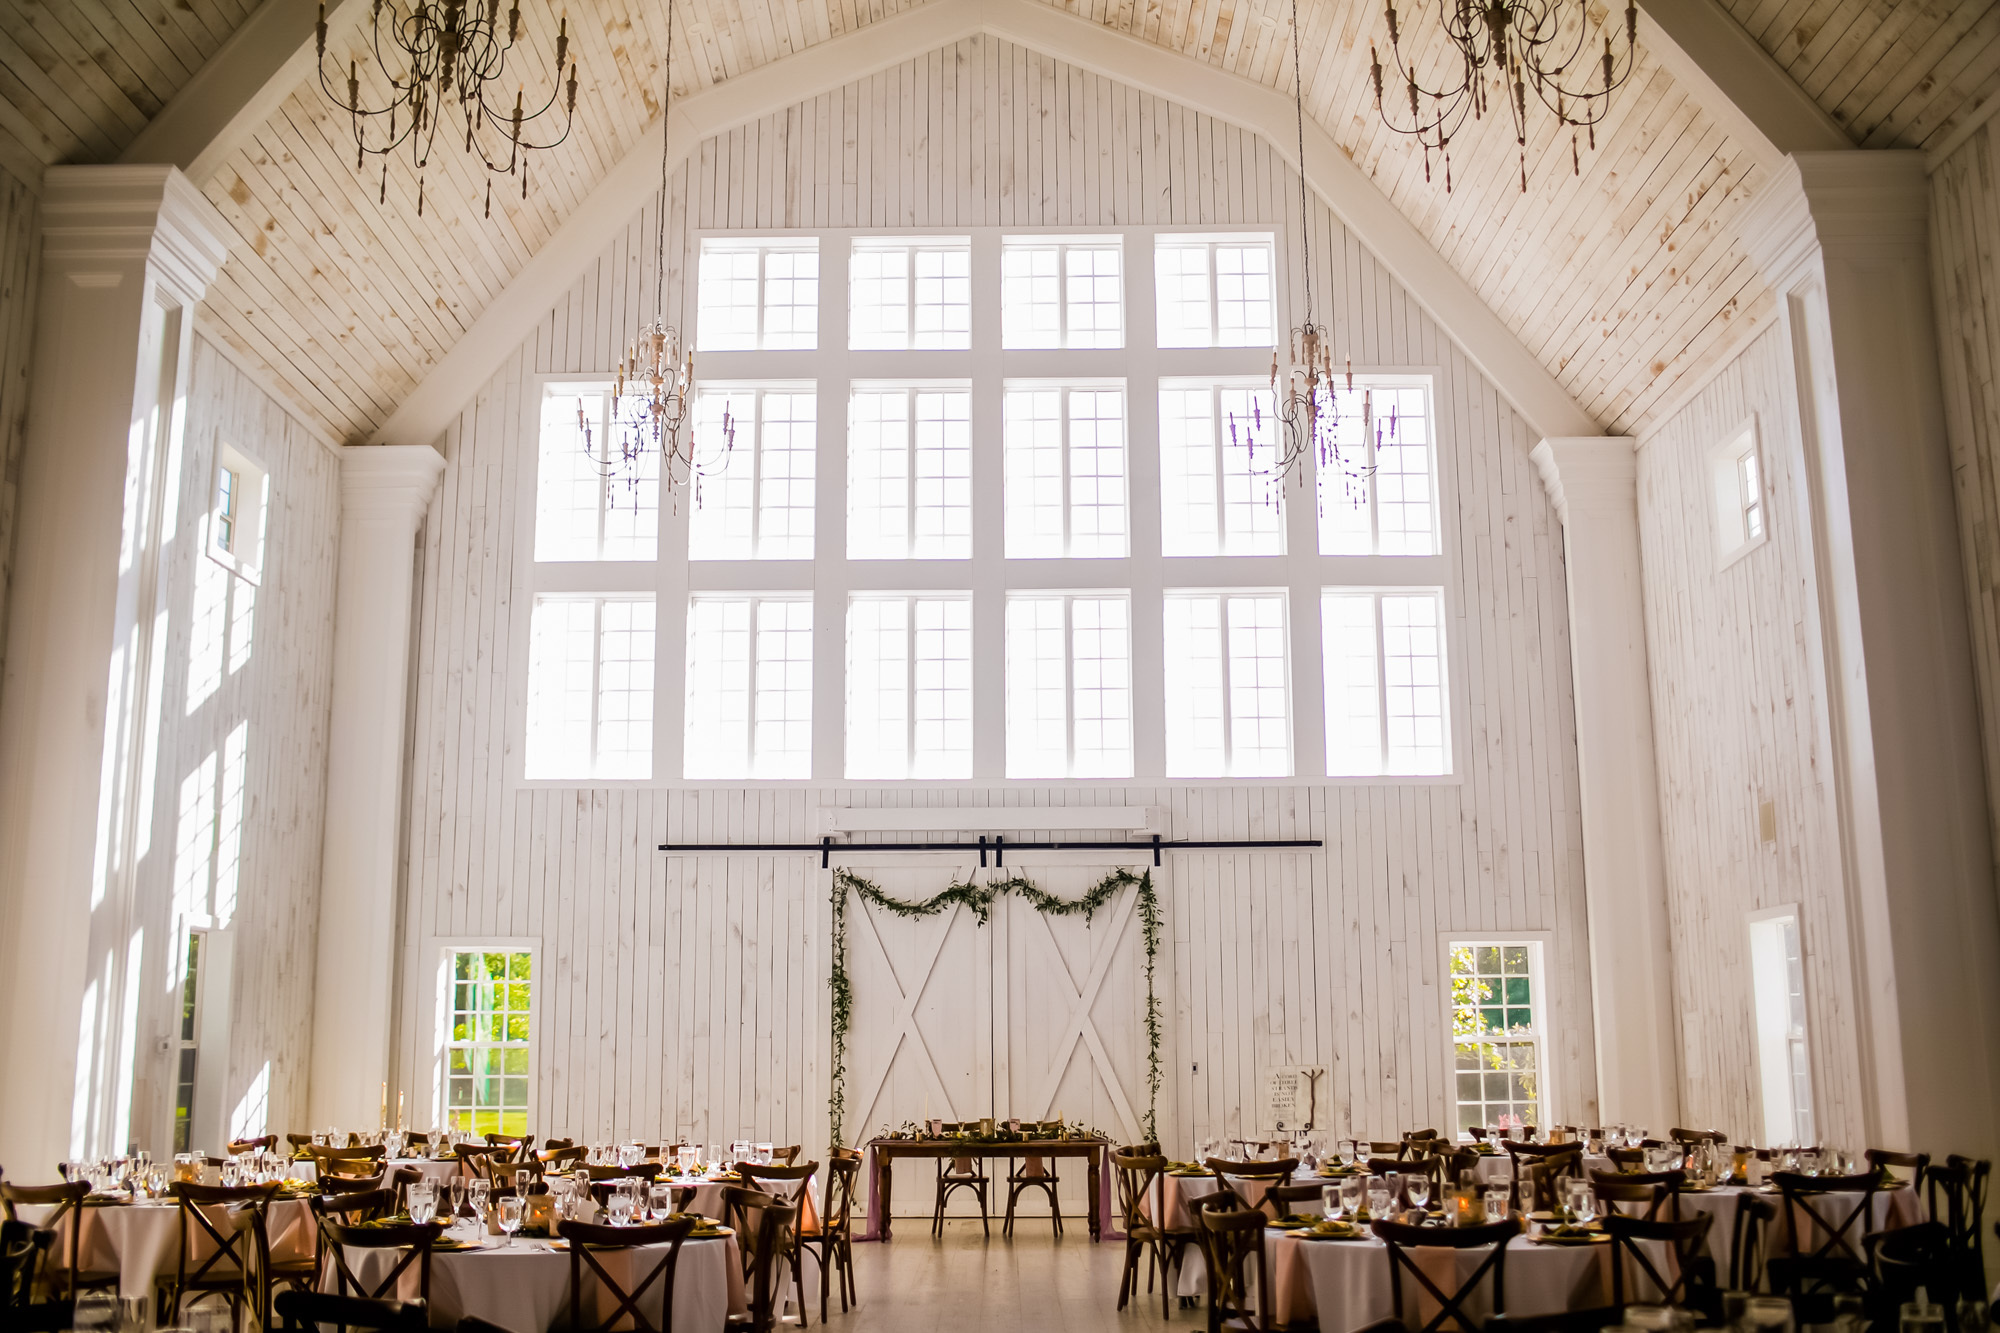 Wedding Venues That Make a Statement